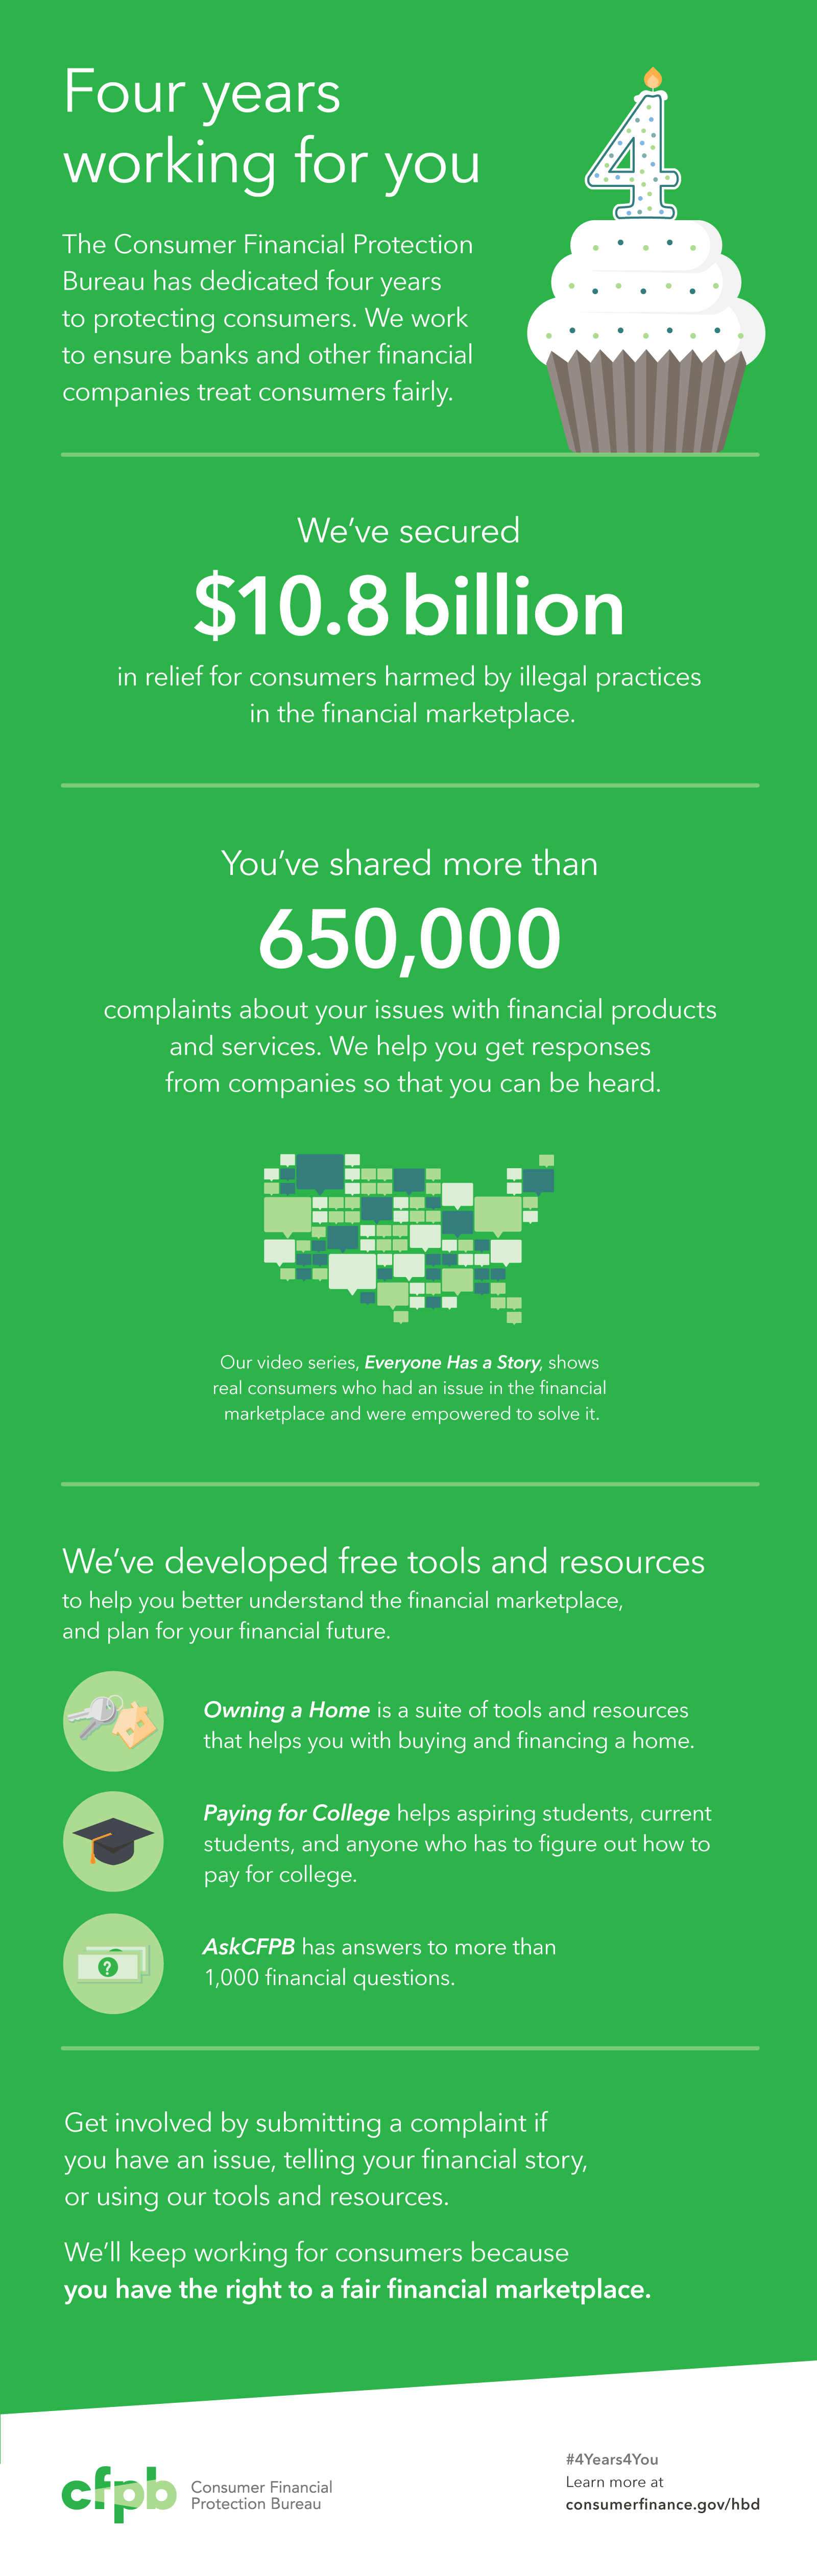 CFPB - Four years working for you infographic